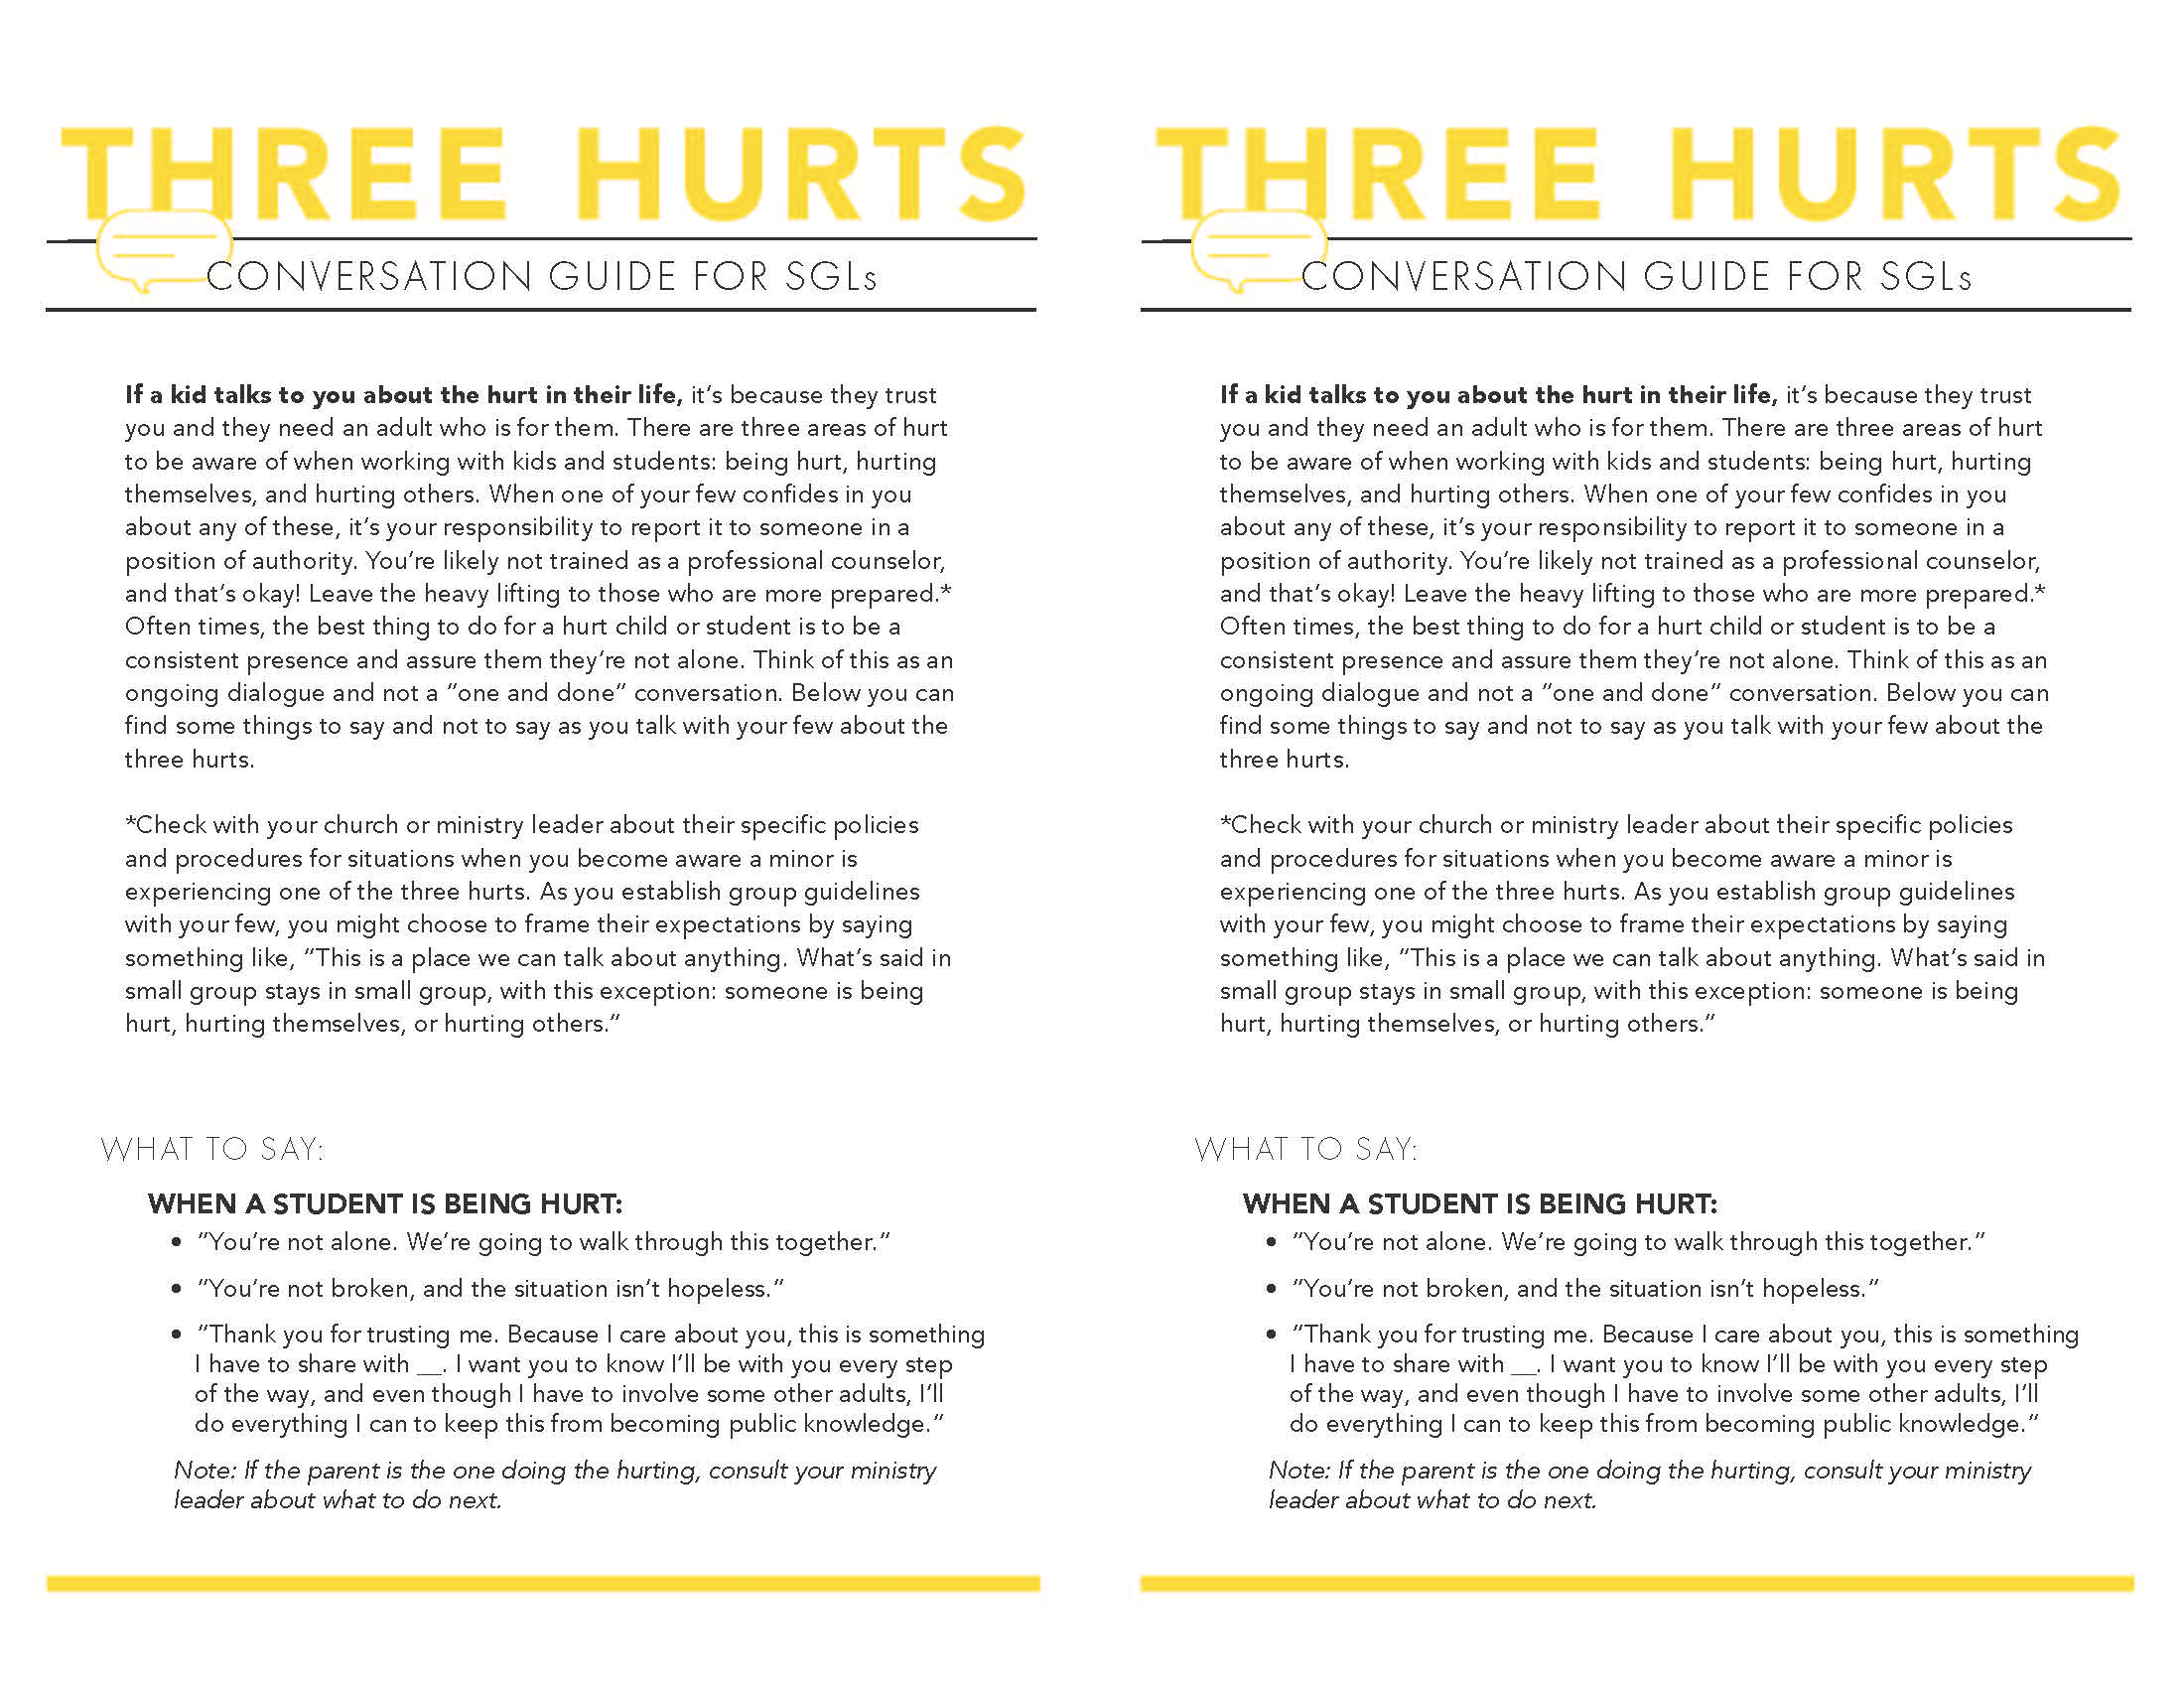 The Three Hurts Page 1